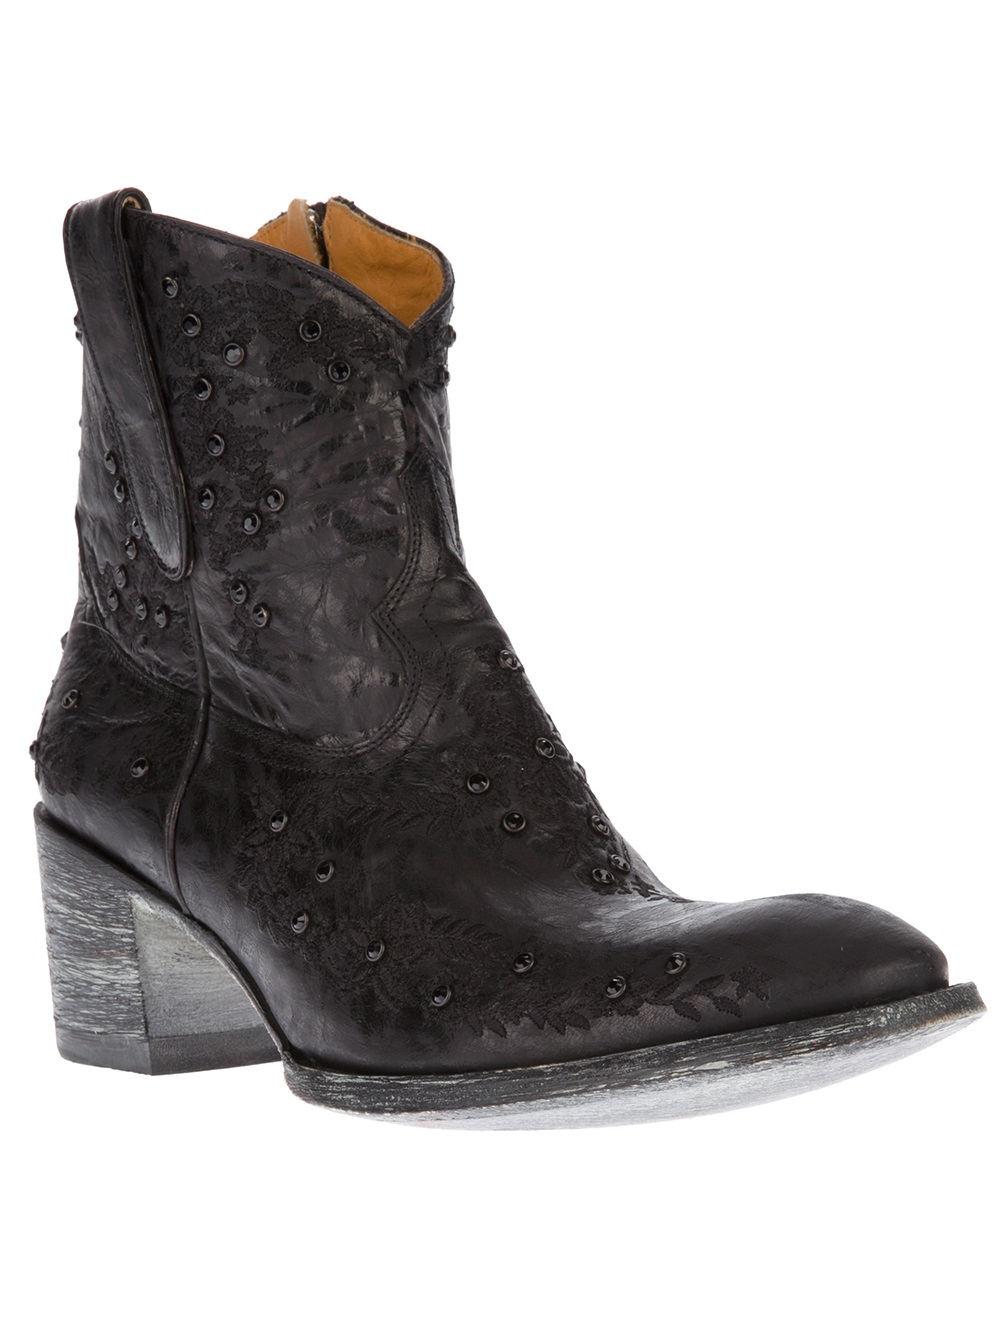 Mexicana Sequin Applique Western Boot In Black Lyst